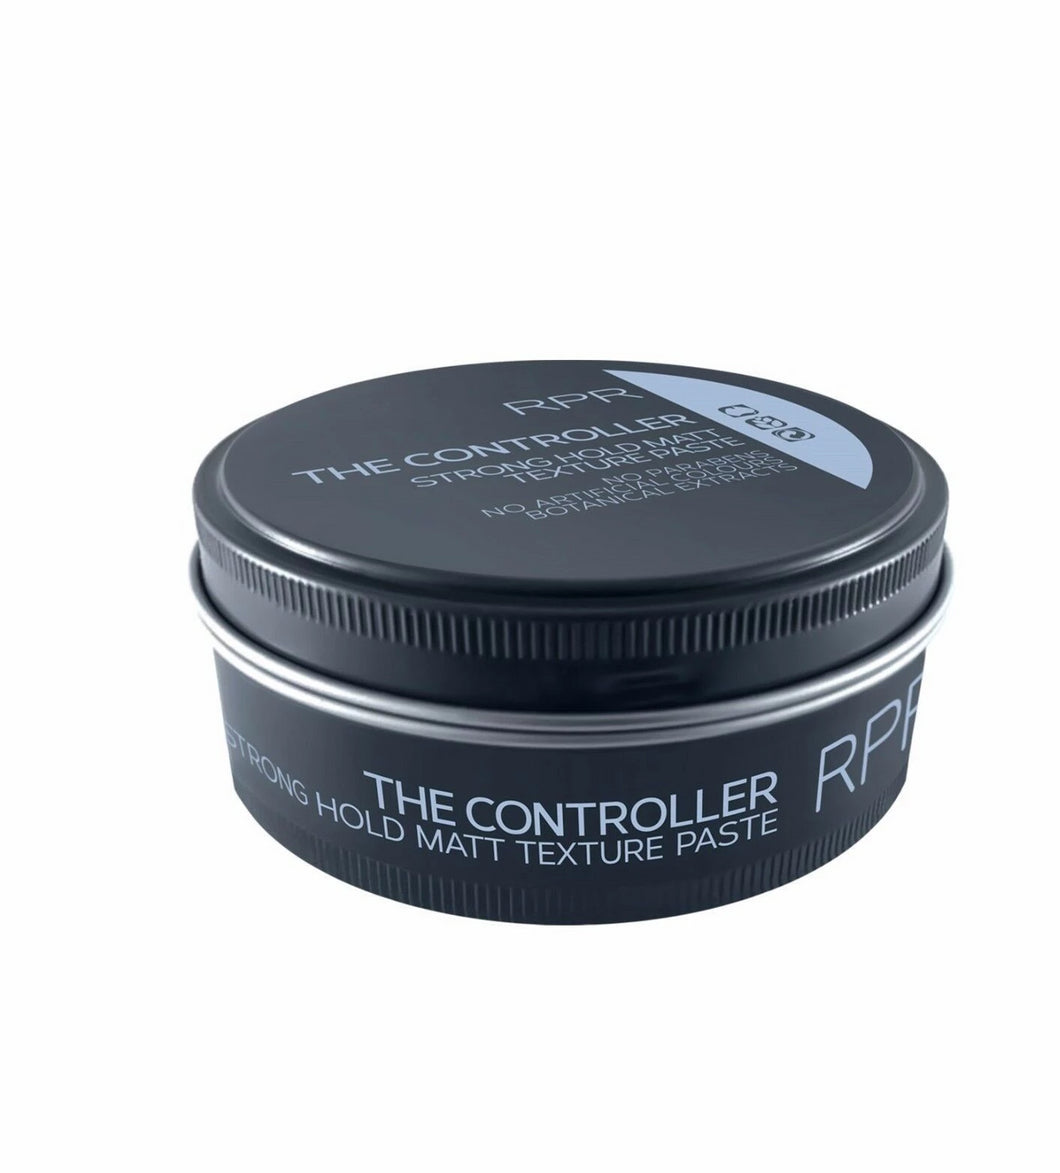 iaahhaircare,RPR THE CONTROLLER 90g,Styling Products,The Controller RPR